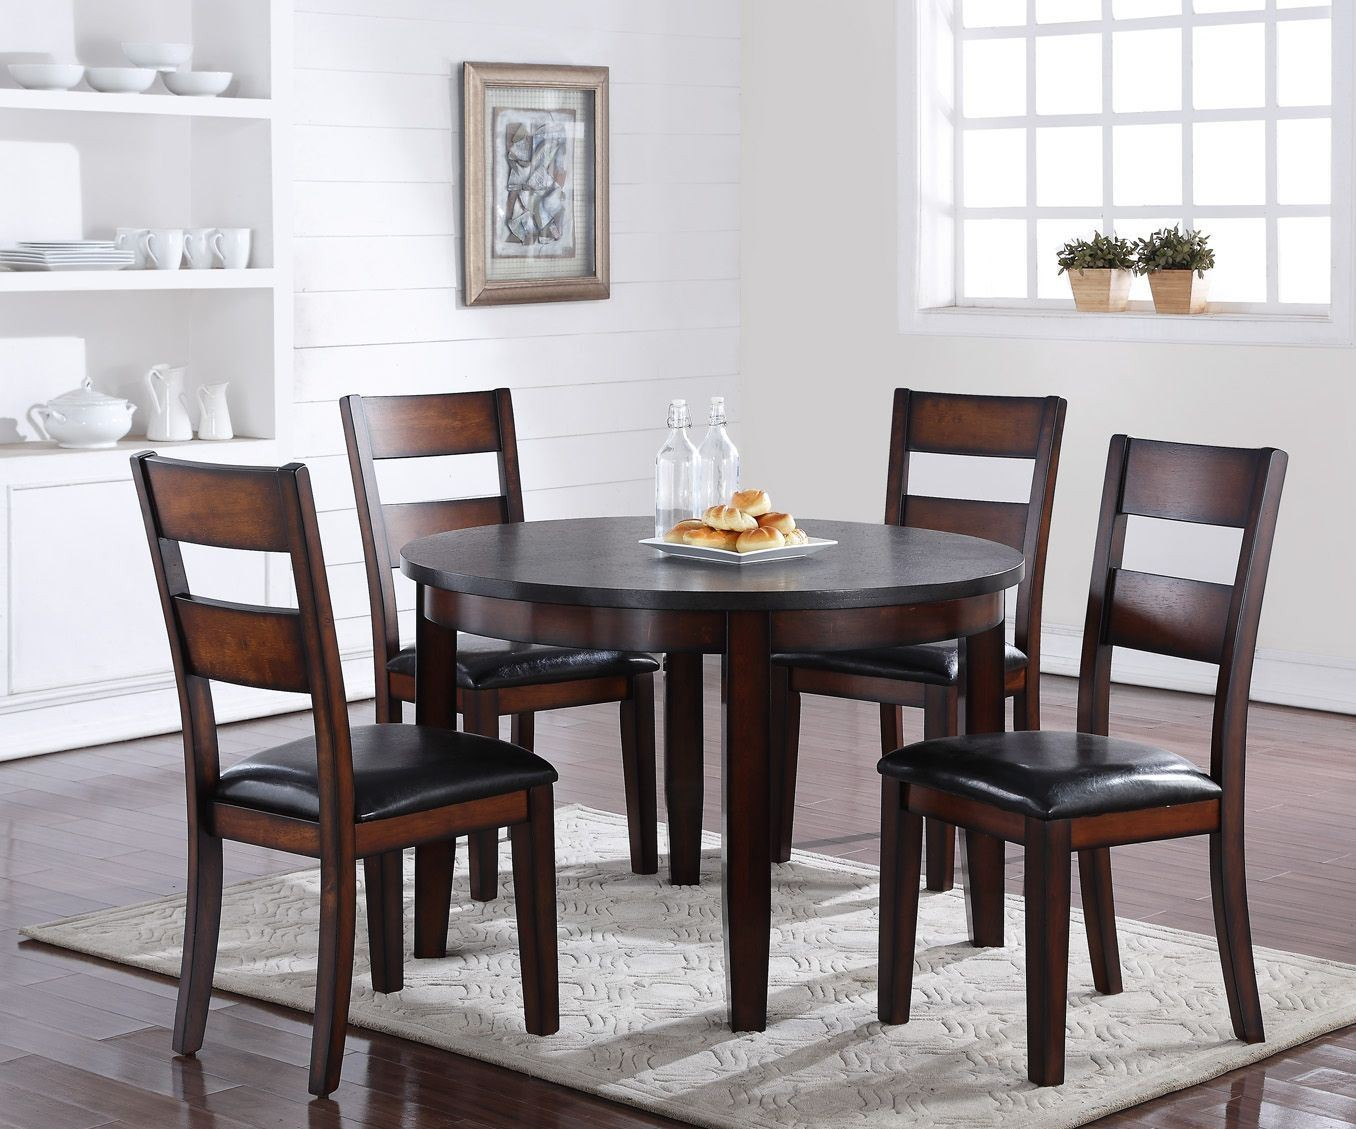 Rockport brown 48 round dining room set zrpt 8080 for Dining room tables 48 round